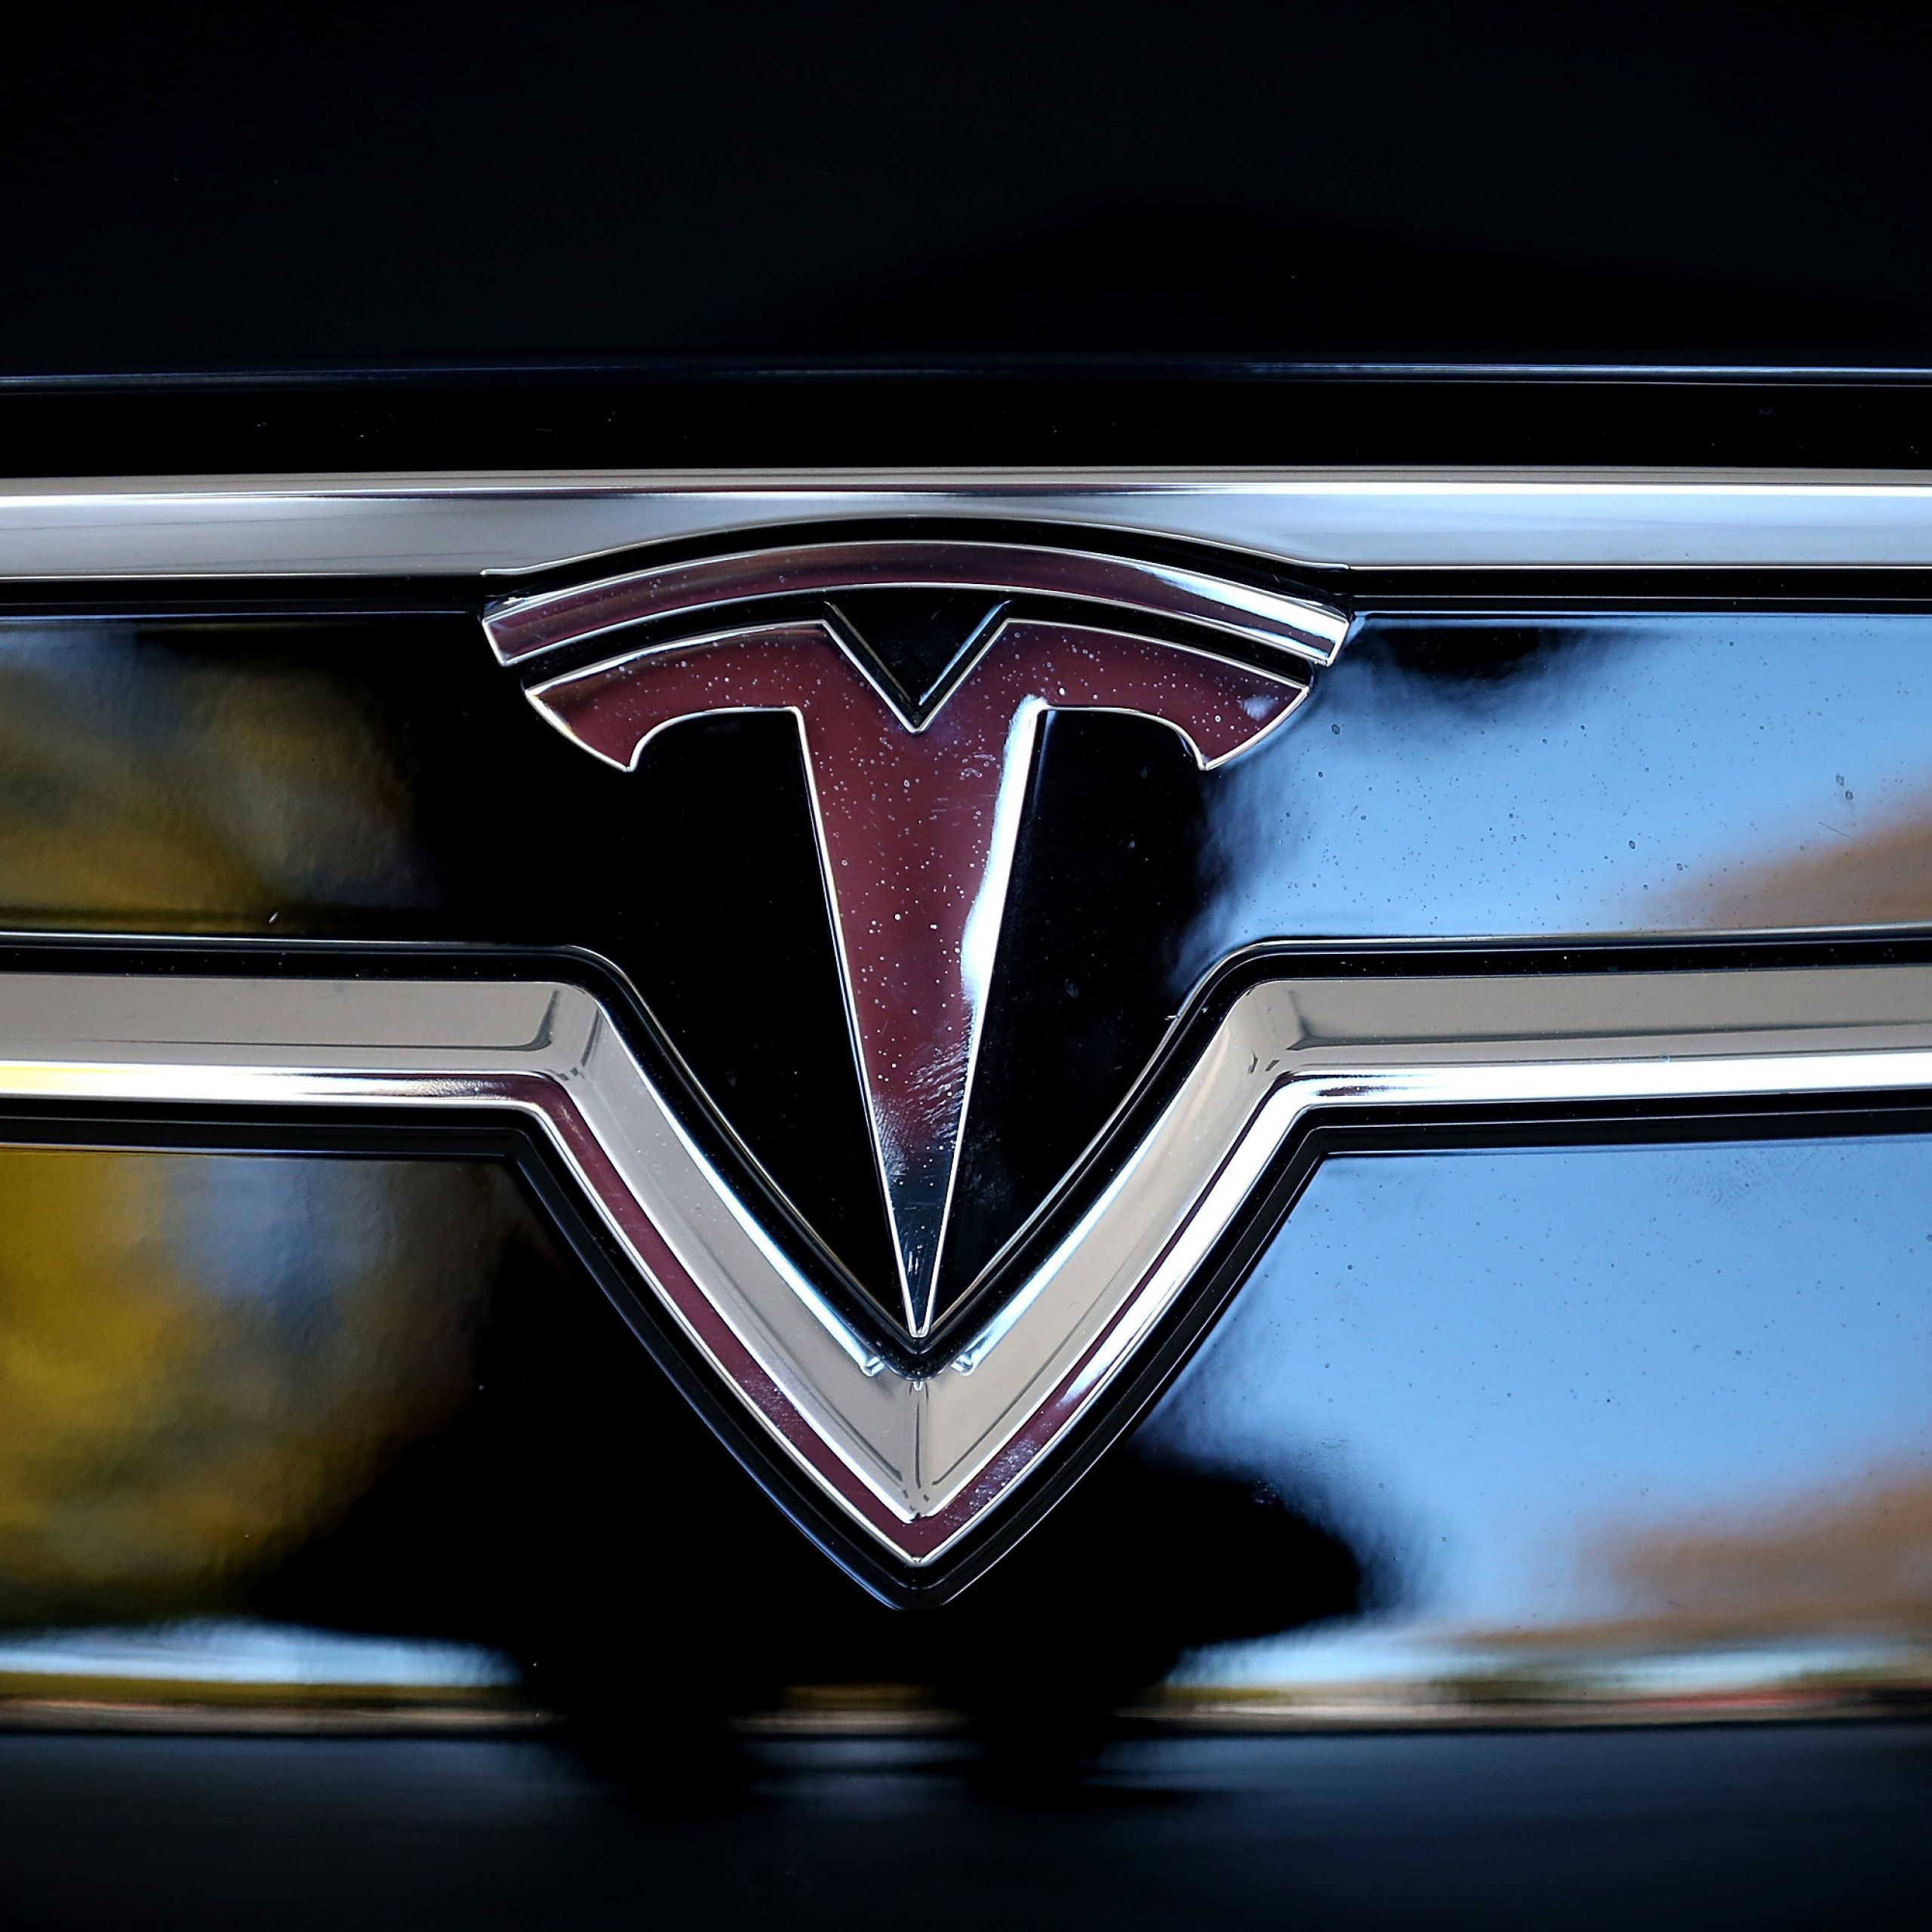 heres what the tesla logo looks like when its not on an illegal